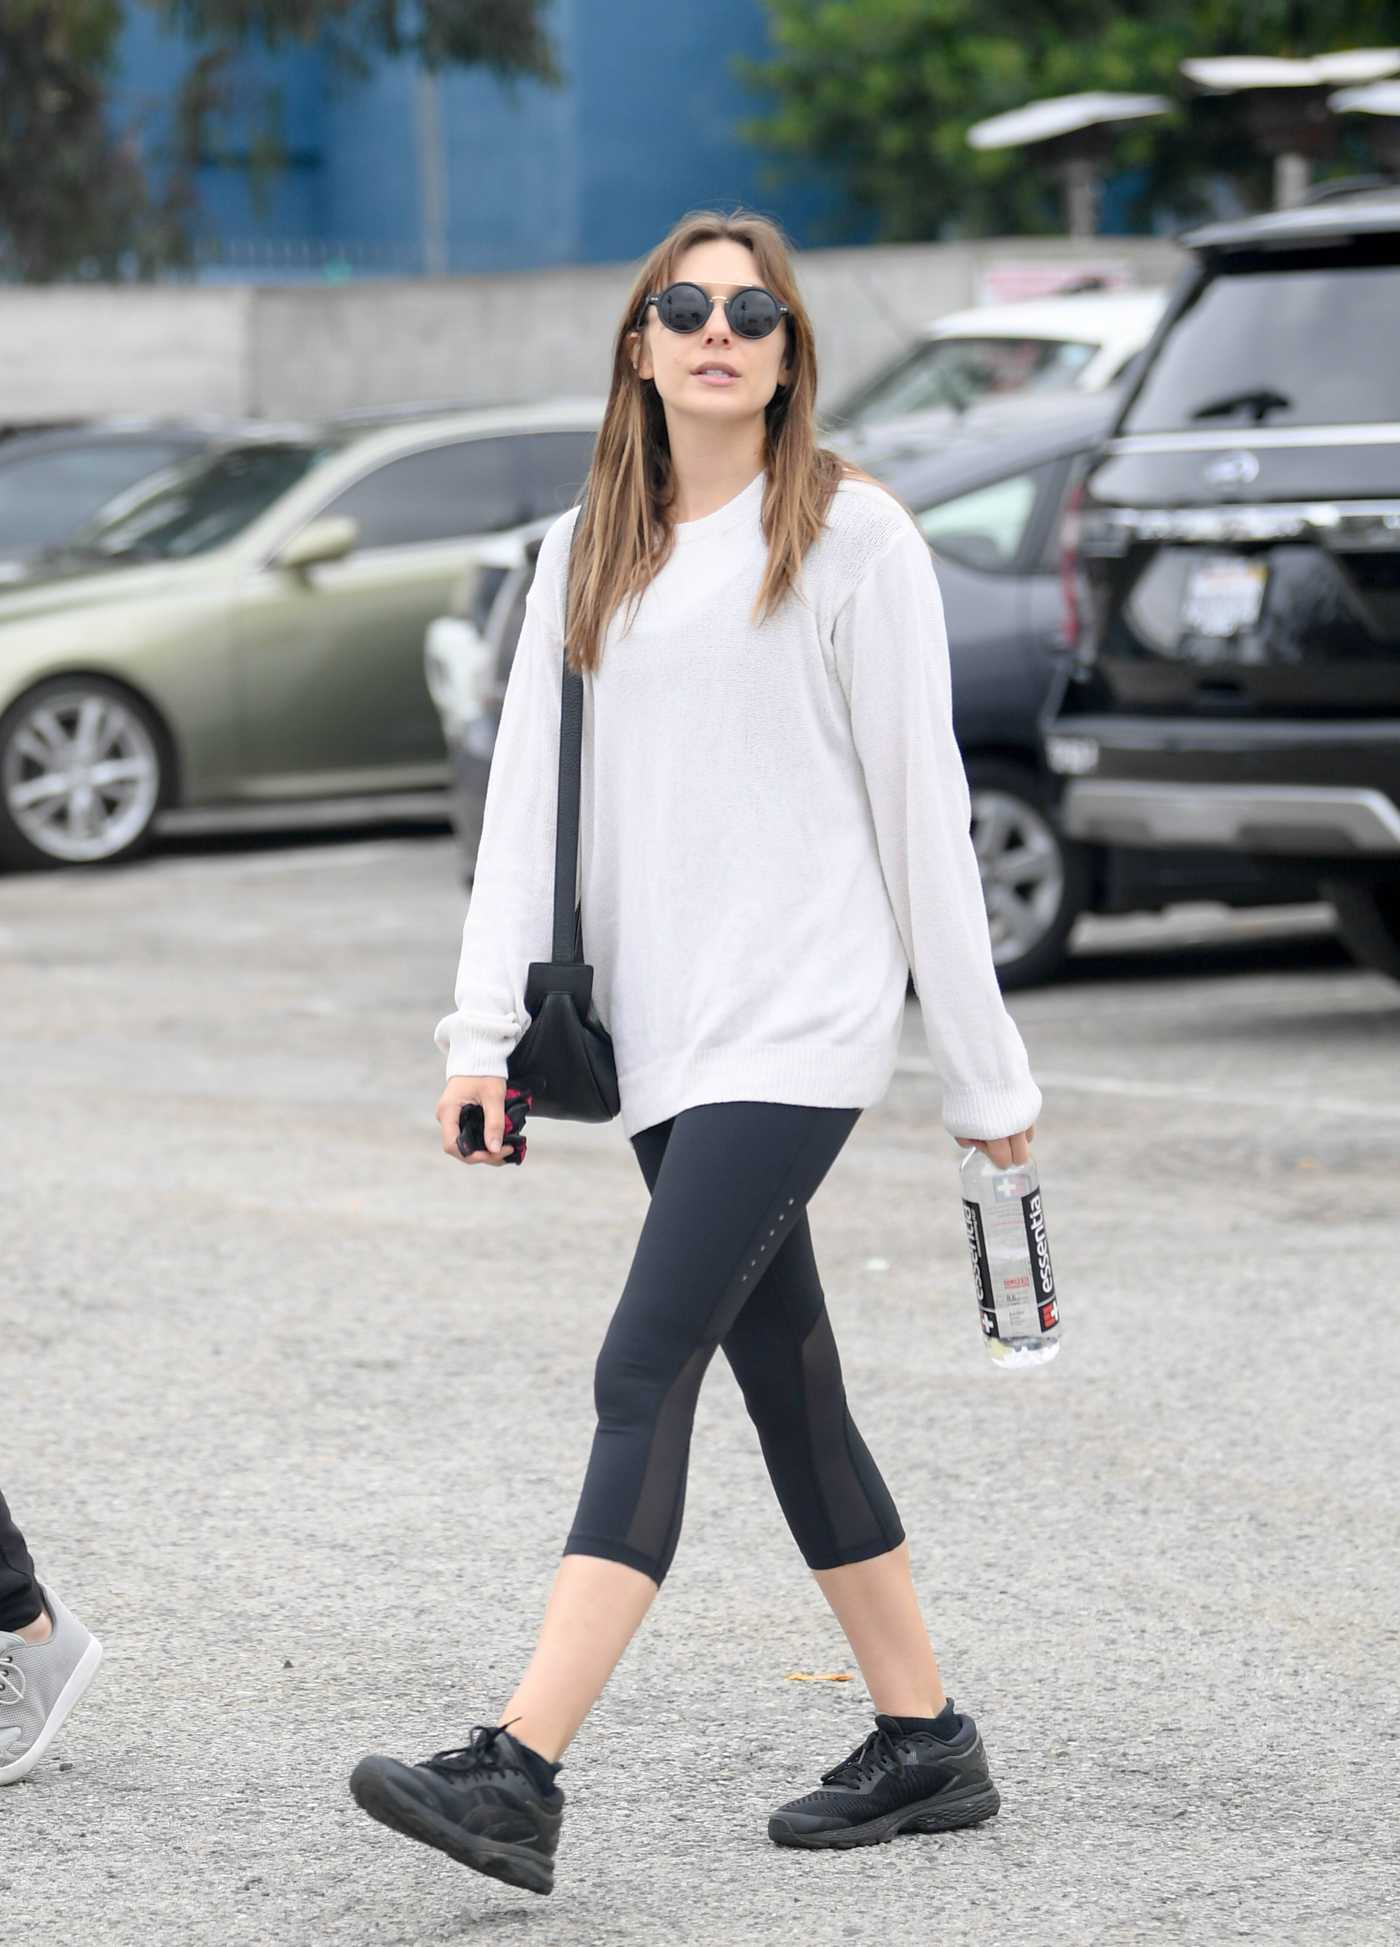 Elizabeth Olsen in a White Sweater Leaves the Gym in Los Angeles 06/03/2019